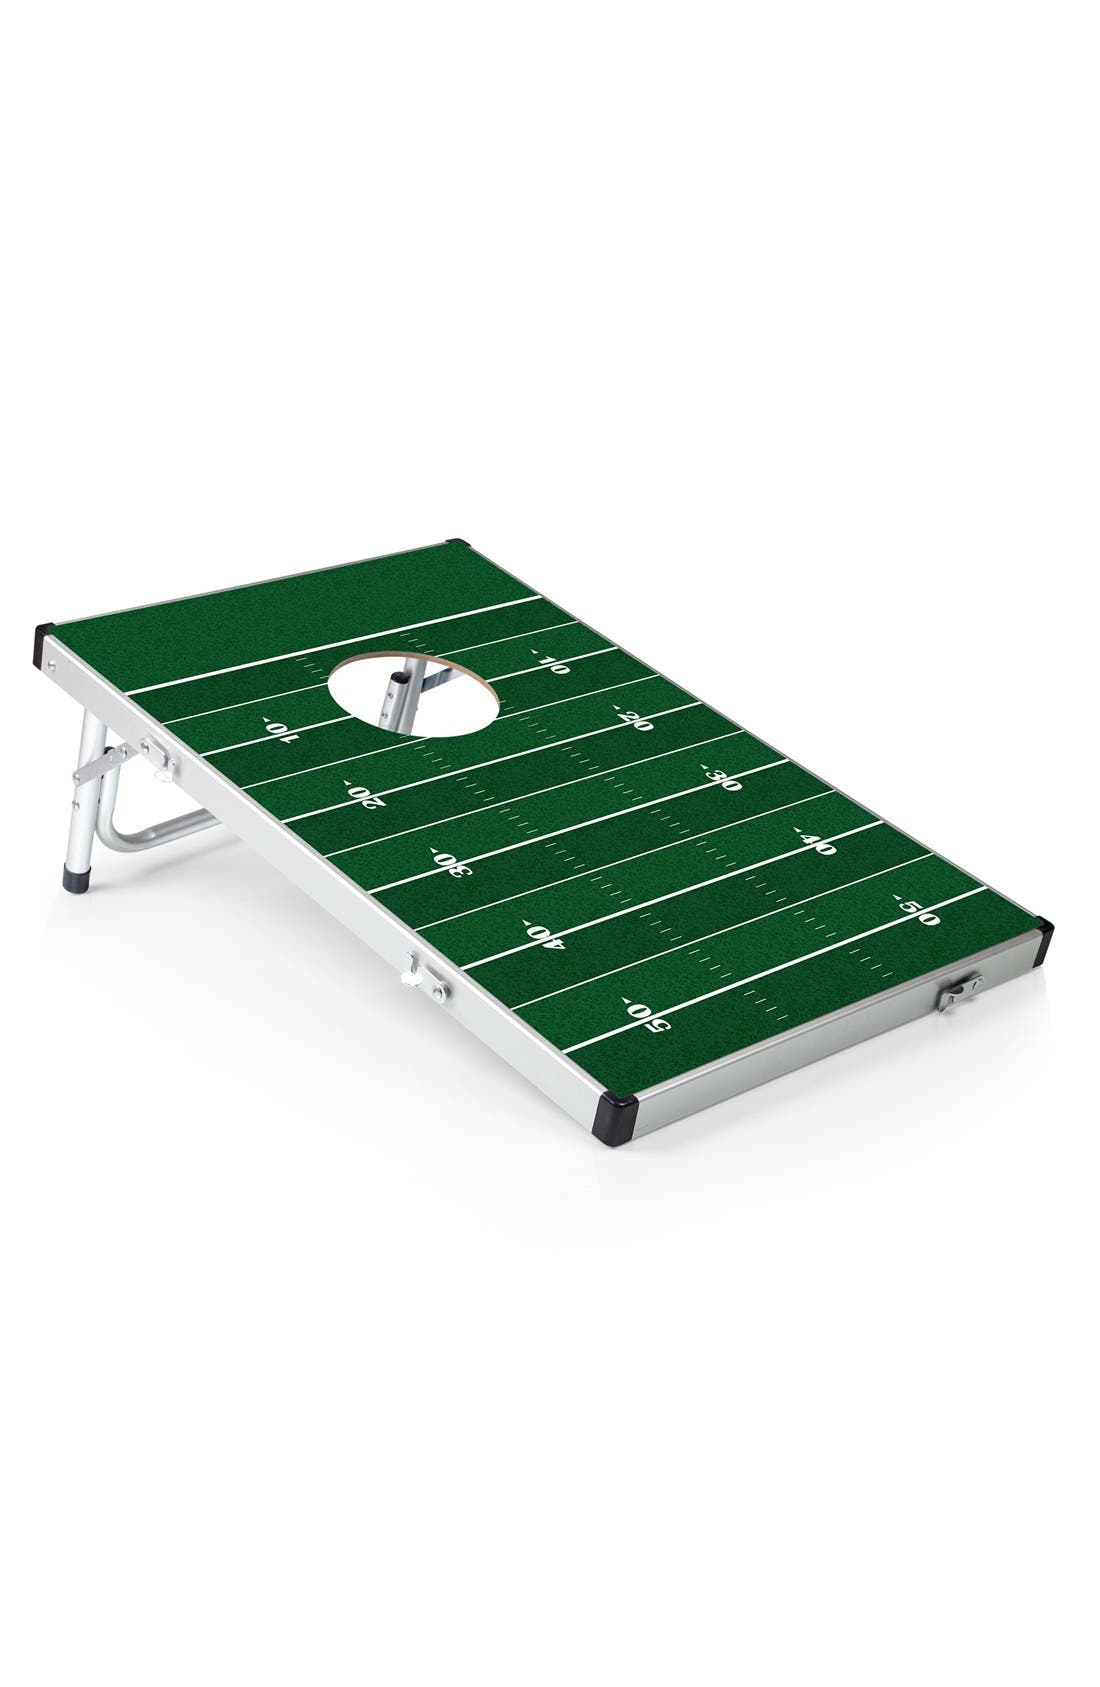 'Football' Bean Bag Toss Game,                             Main thumbnail 1, color,                             Green